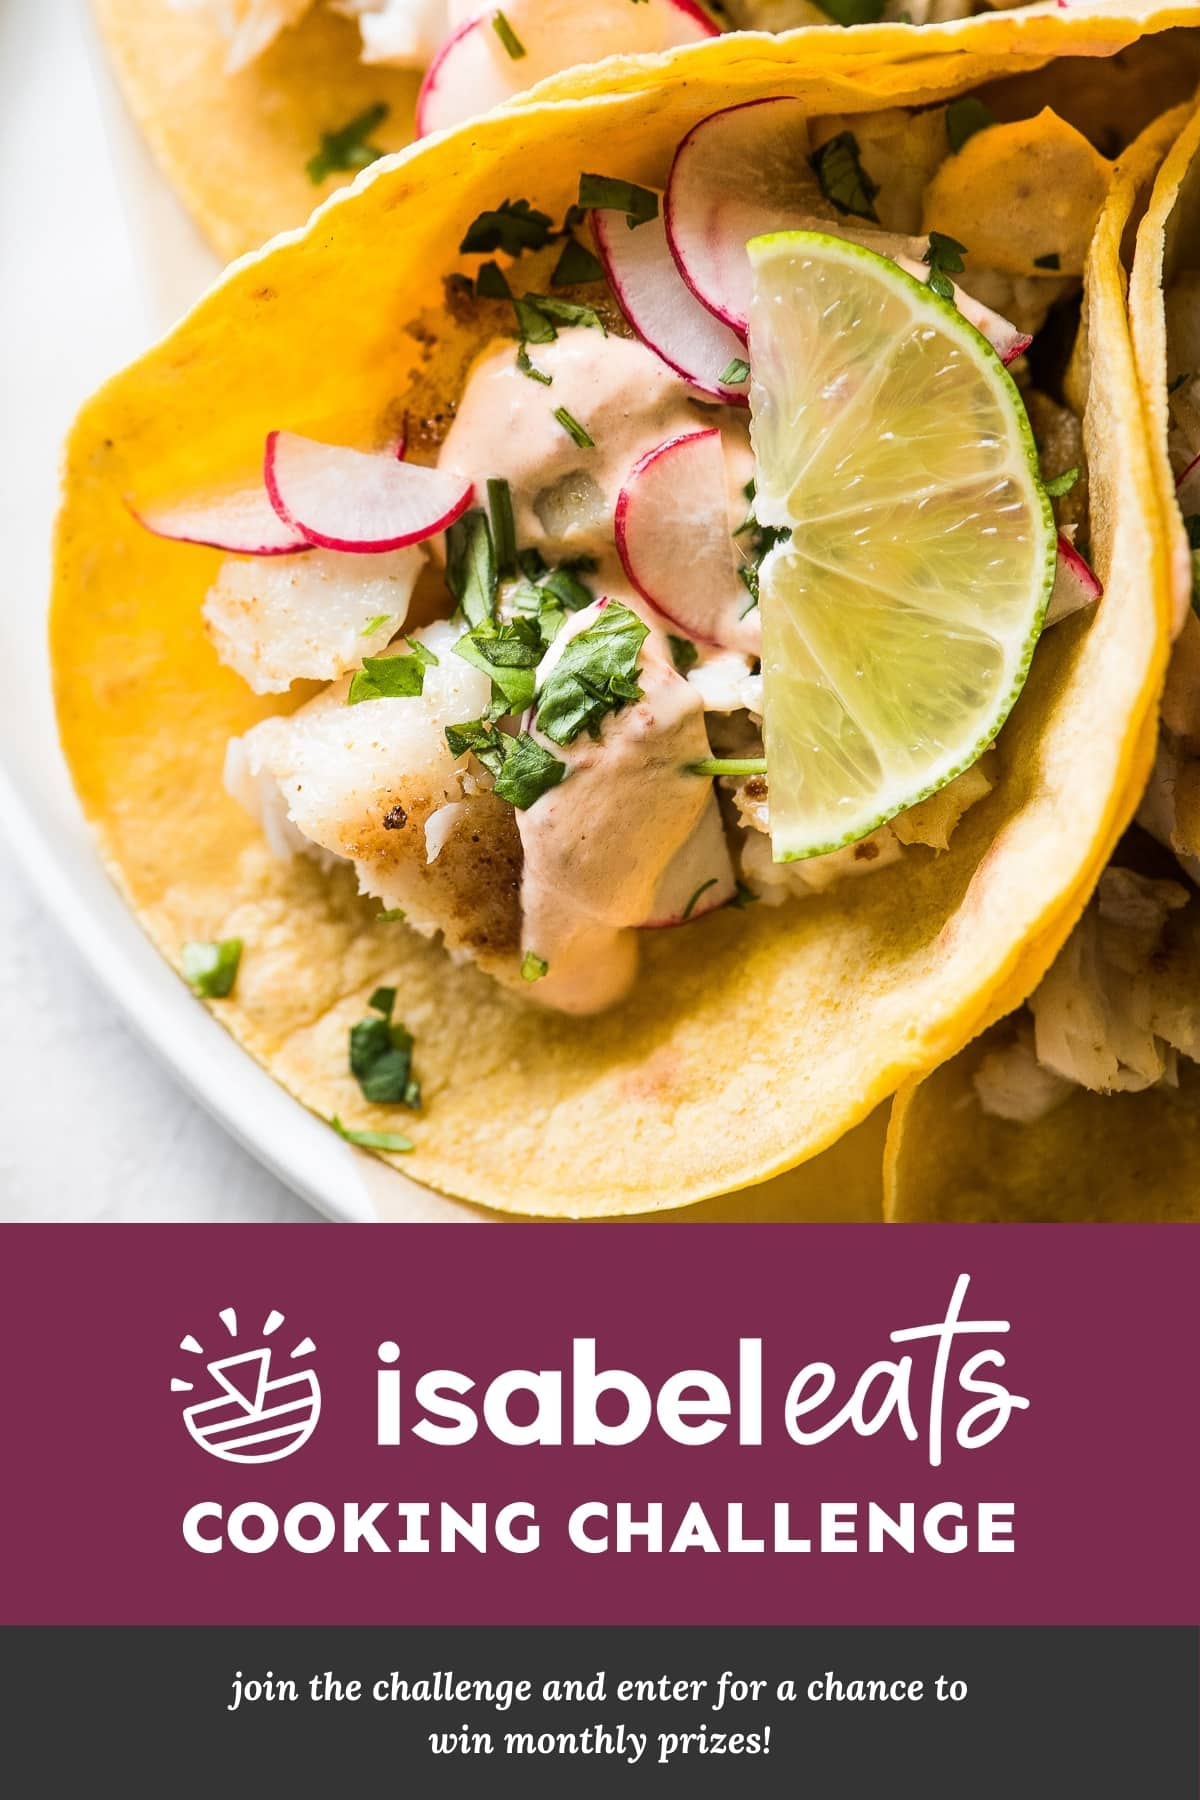 Isabel Eats Cooking Challenge - Join the challenge and enter for a chance to win monthly prizes!